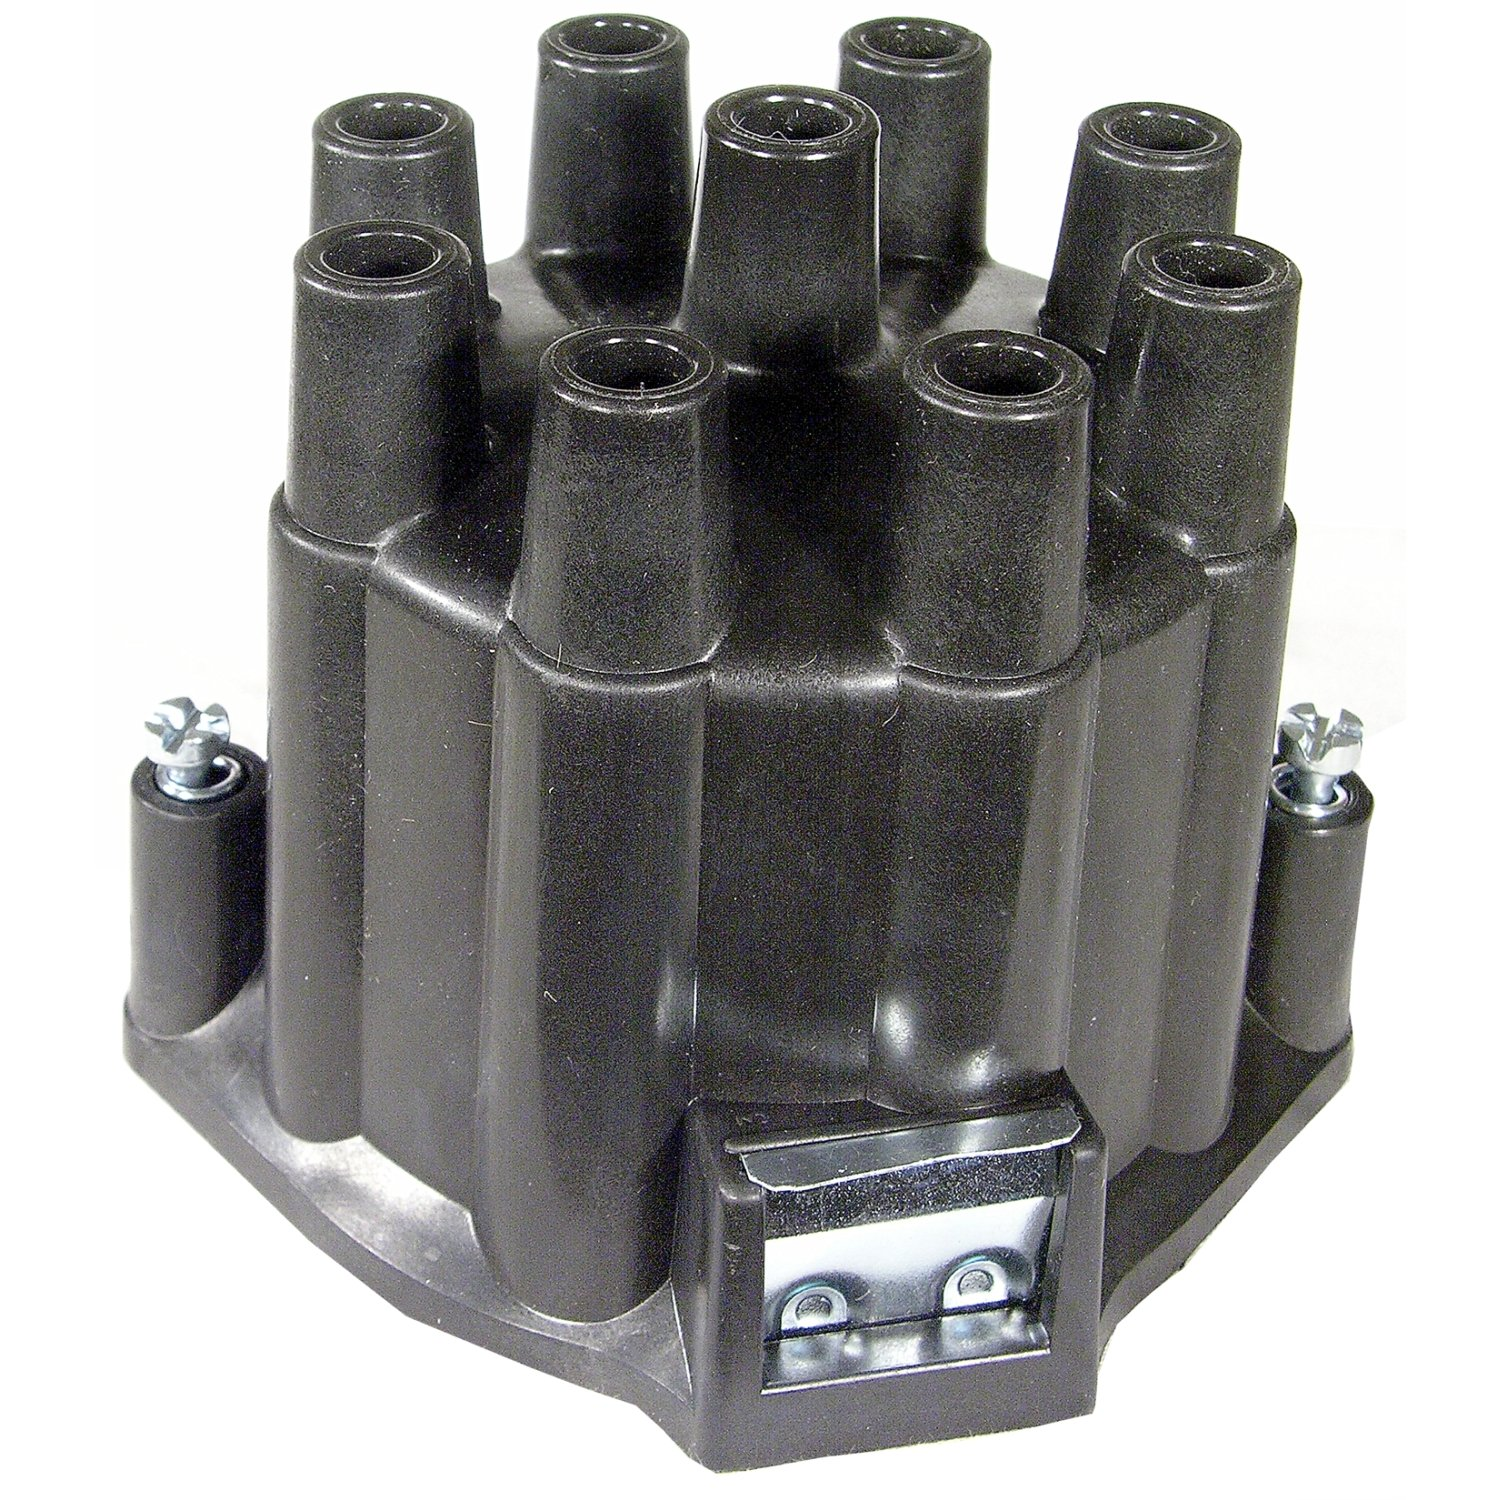 ACDelco D308R Professional Ignition Distributor Cap